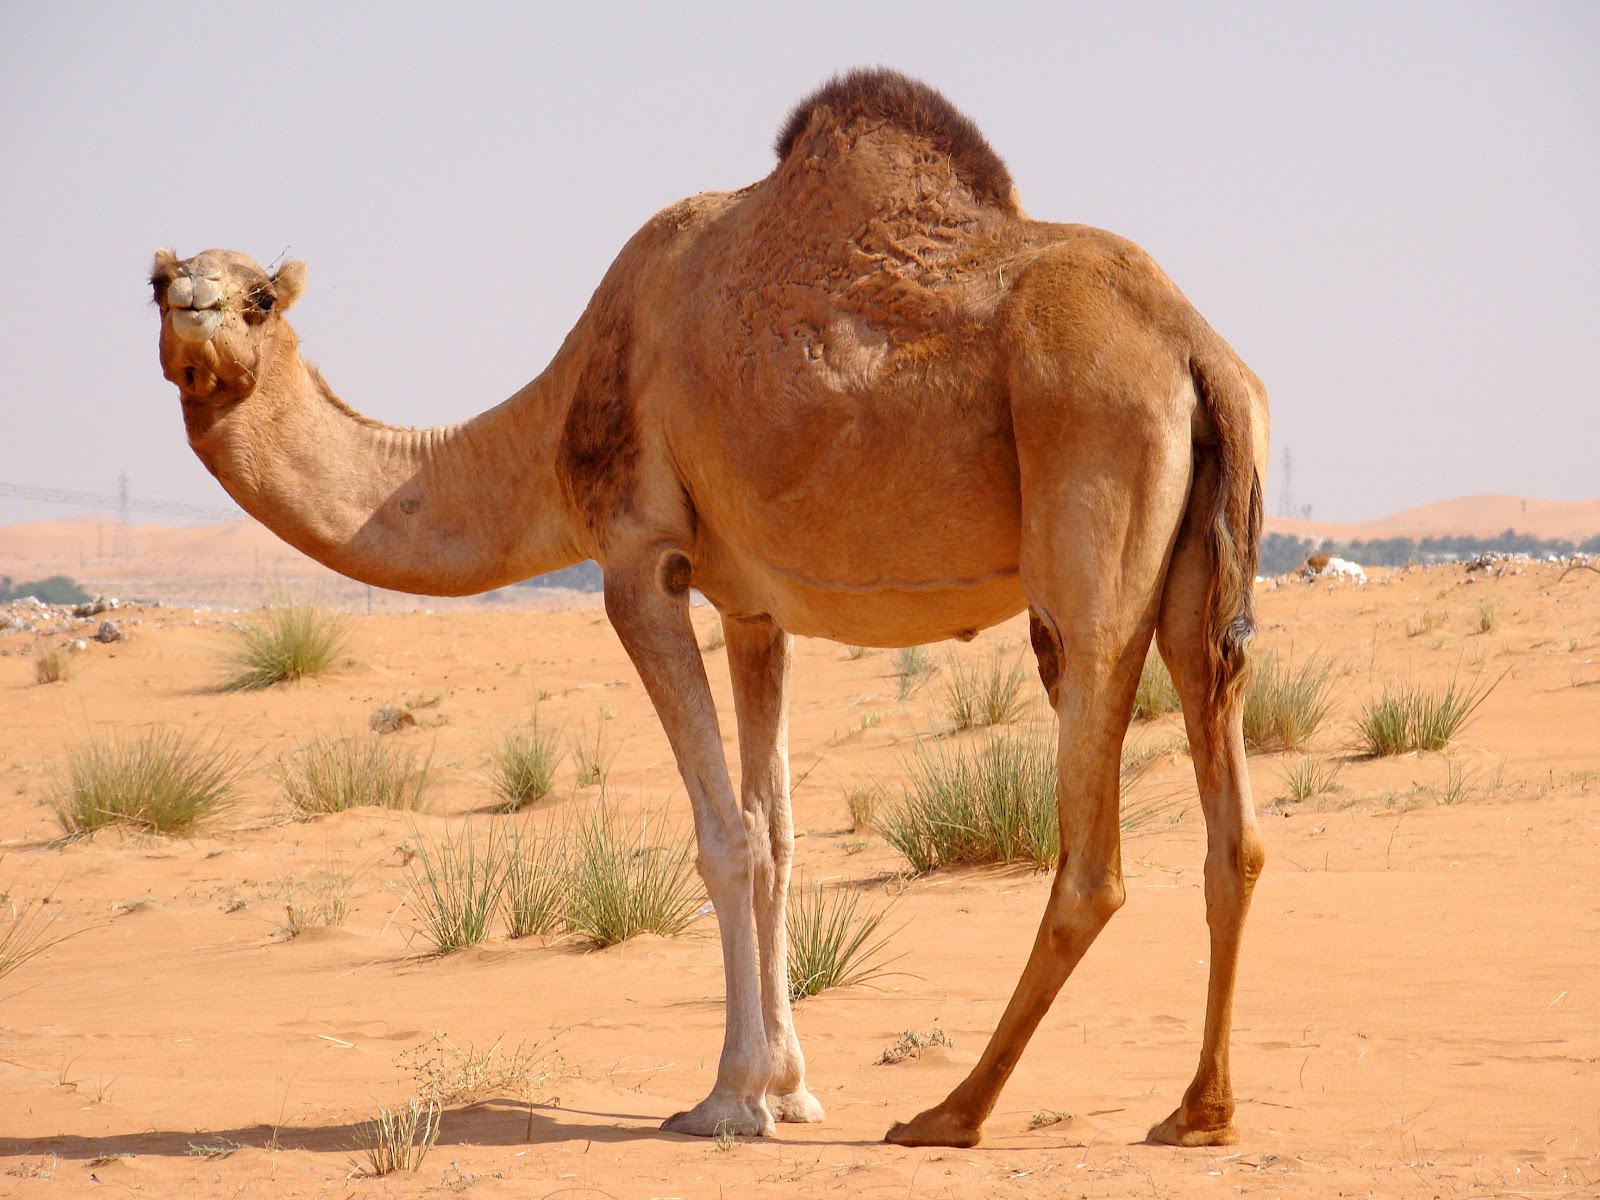 Camel with Hump on its Back 78.24 Kb